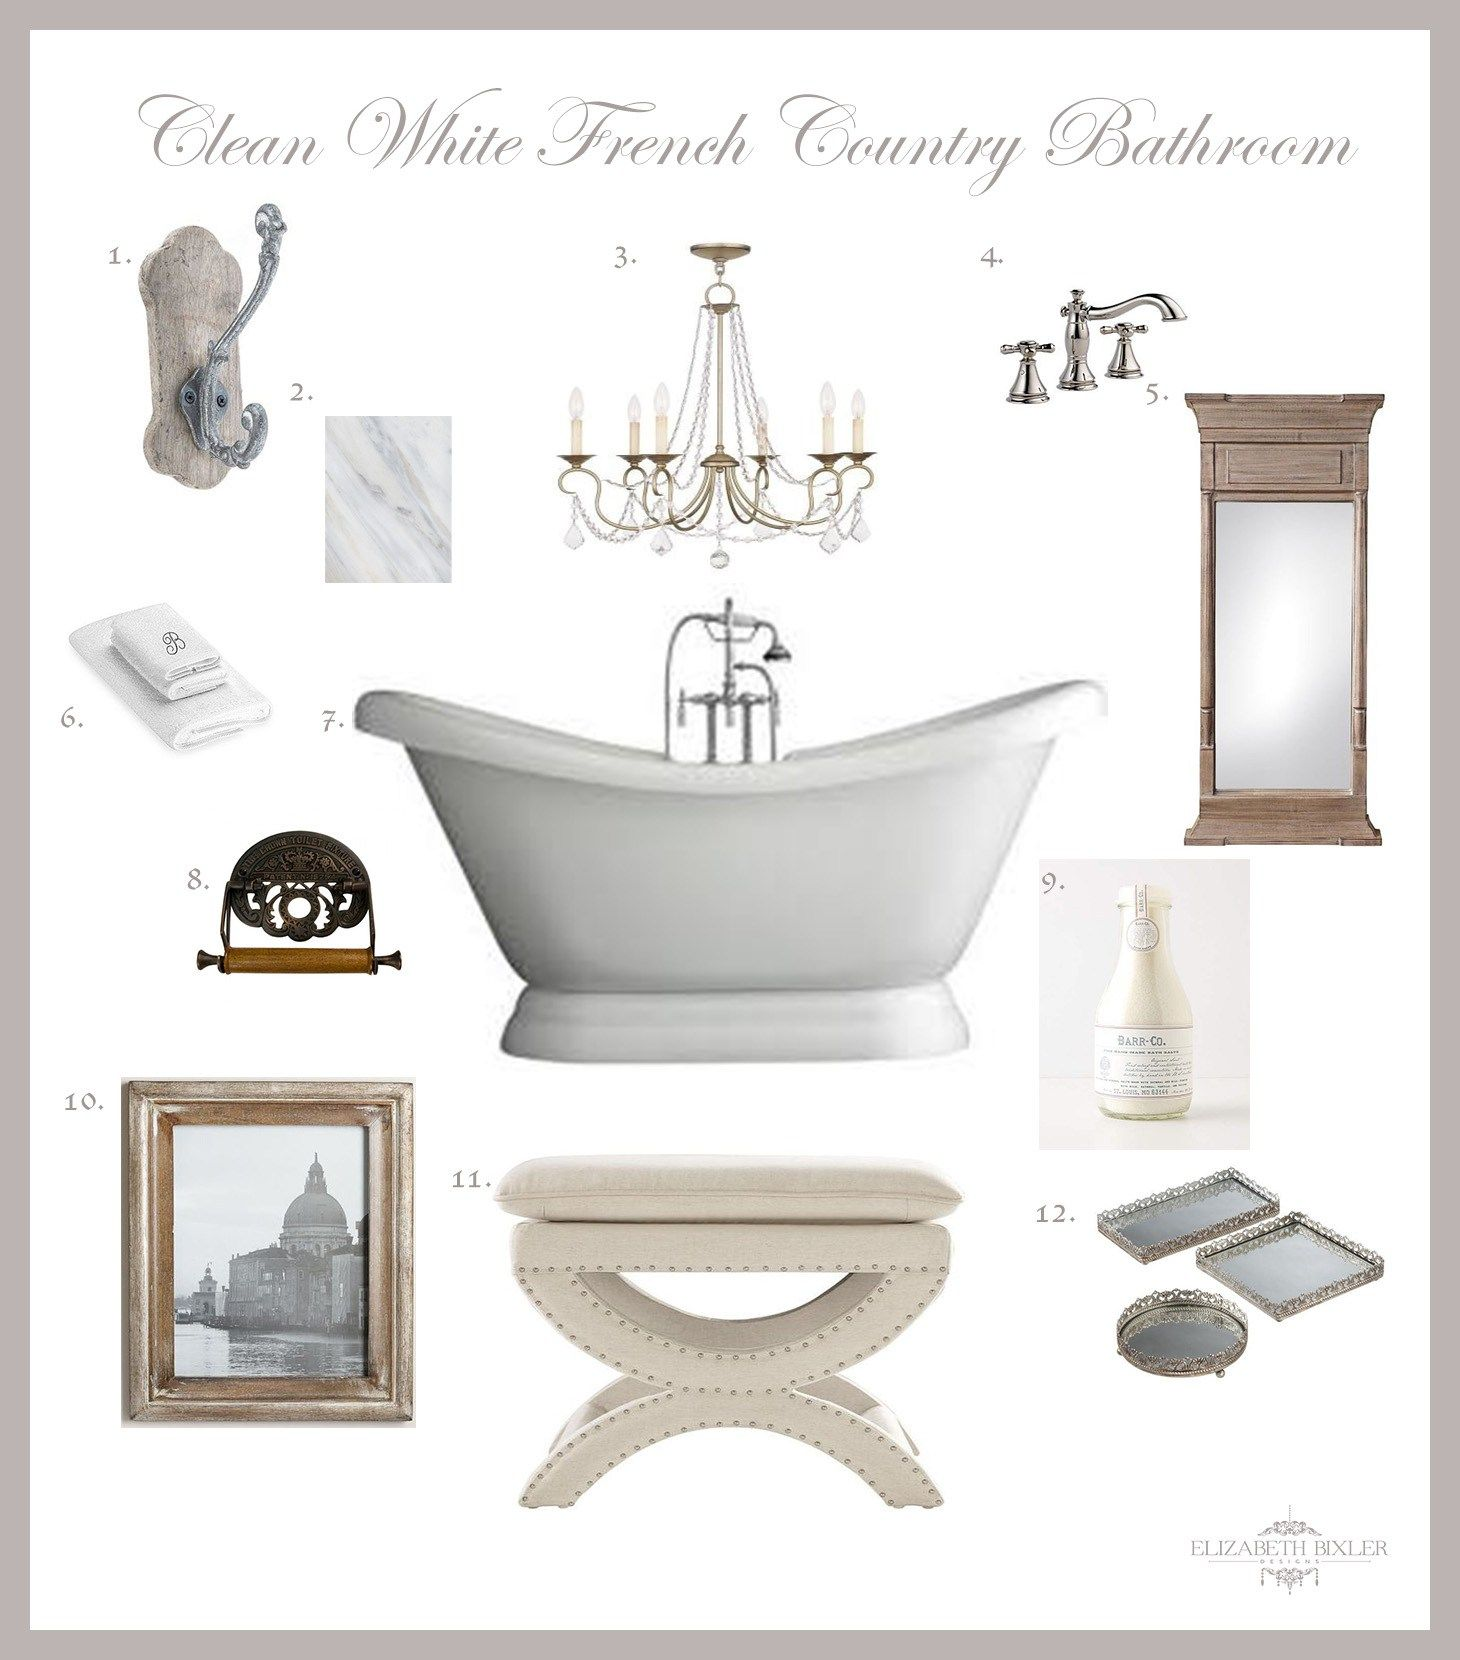 French Country Bathroom Design Collage - | Master bathrooms, Collage ...